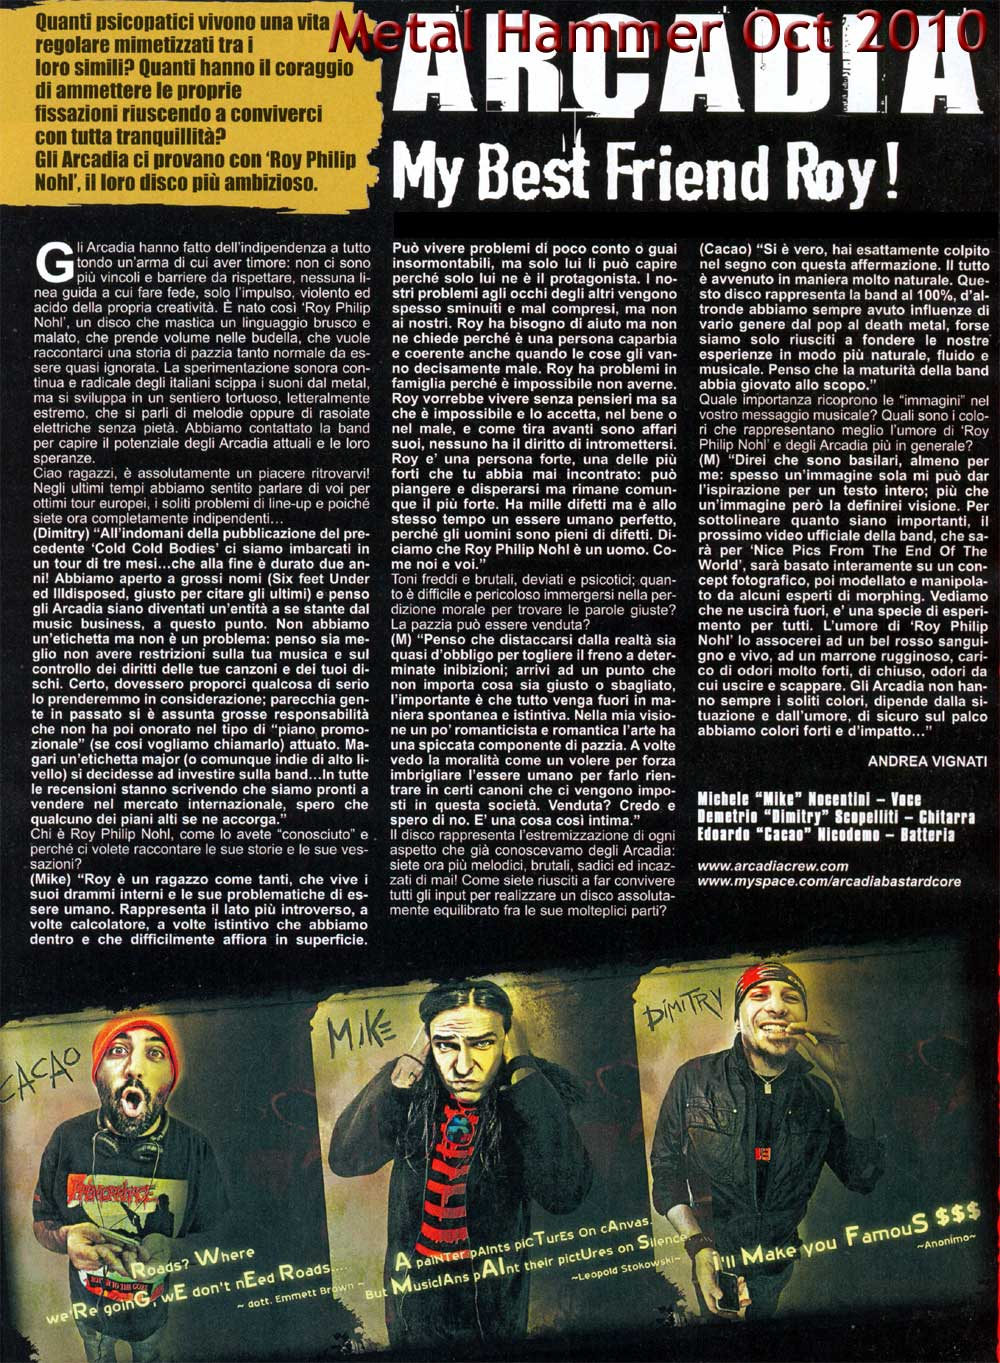 Arcadia Metal Hammer - October 2010